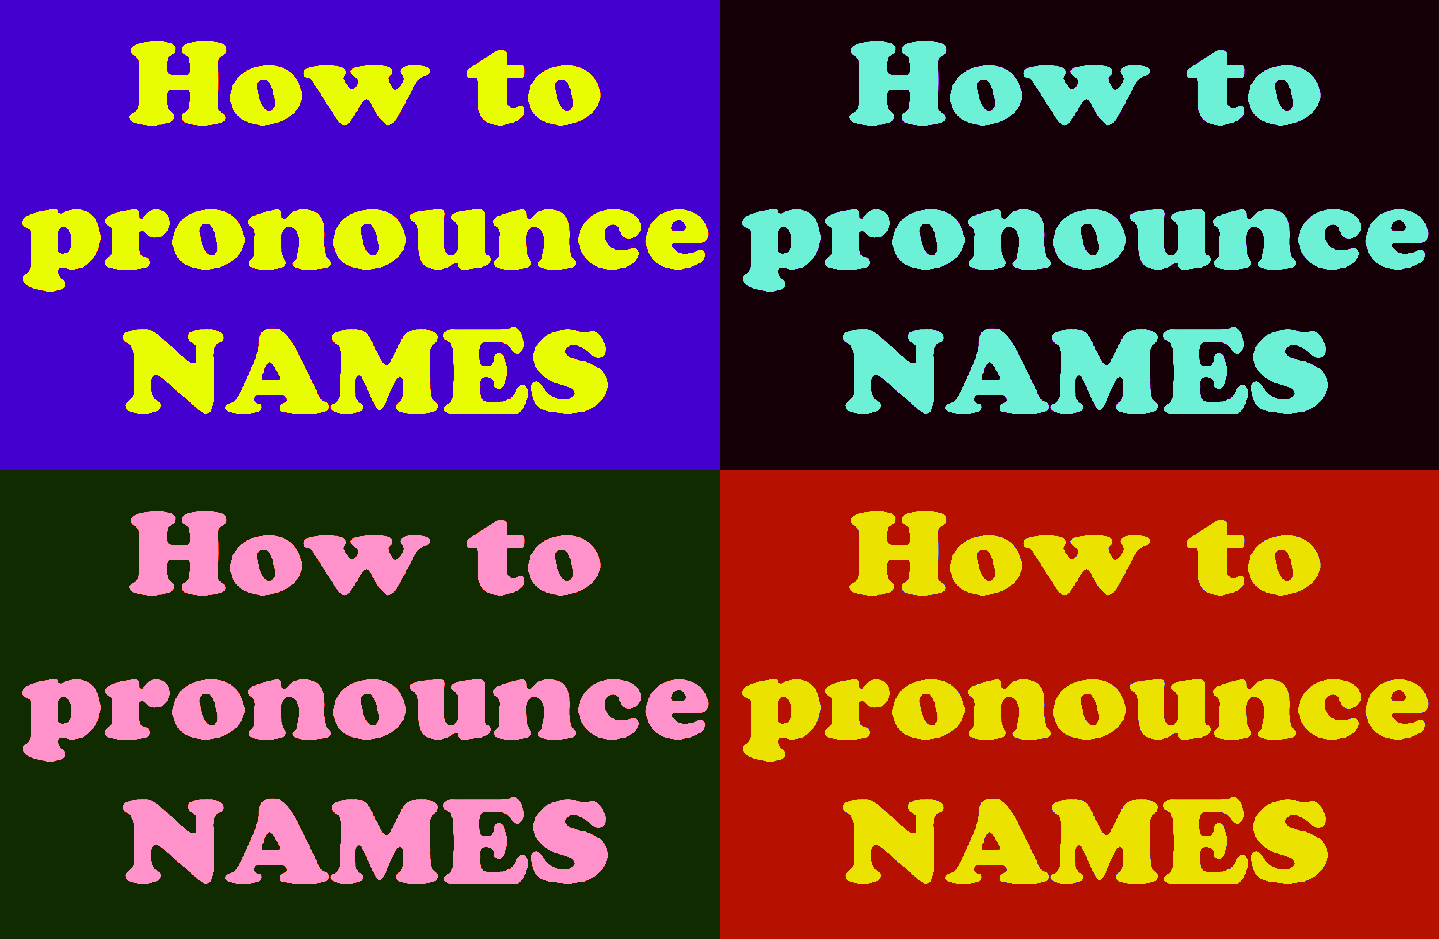 How to correctly pronounce foreign names and places quickly and easily!